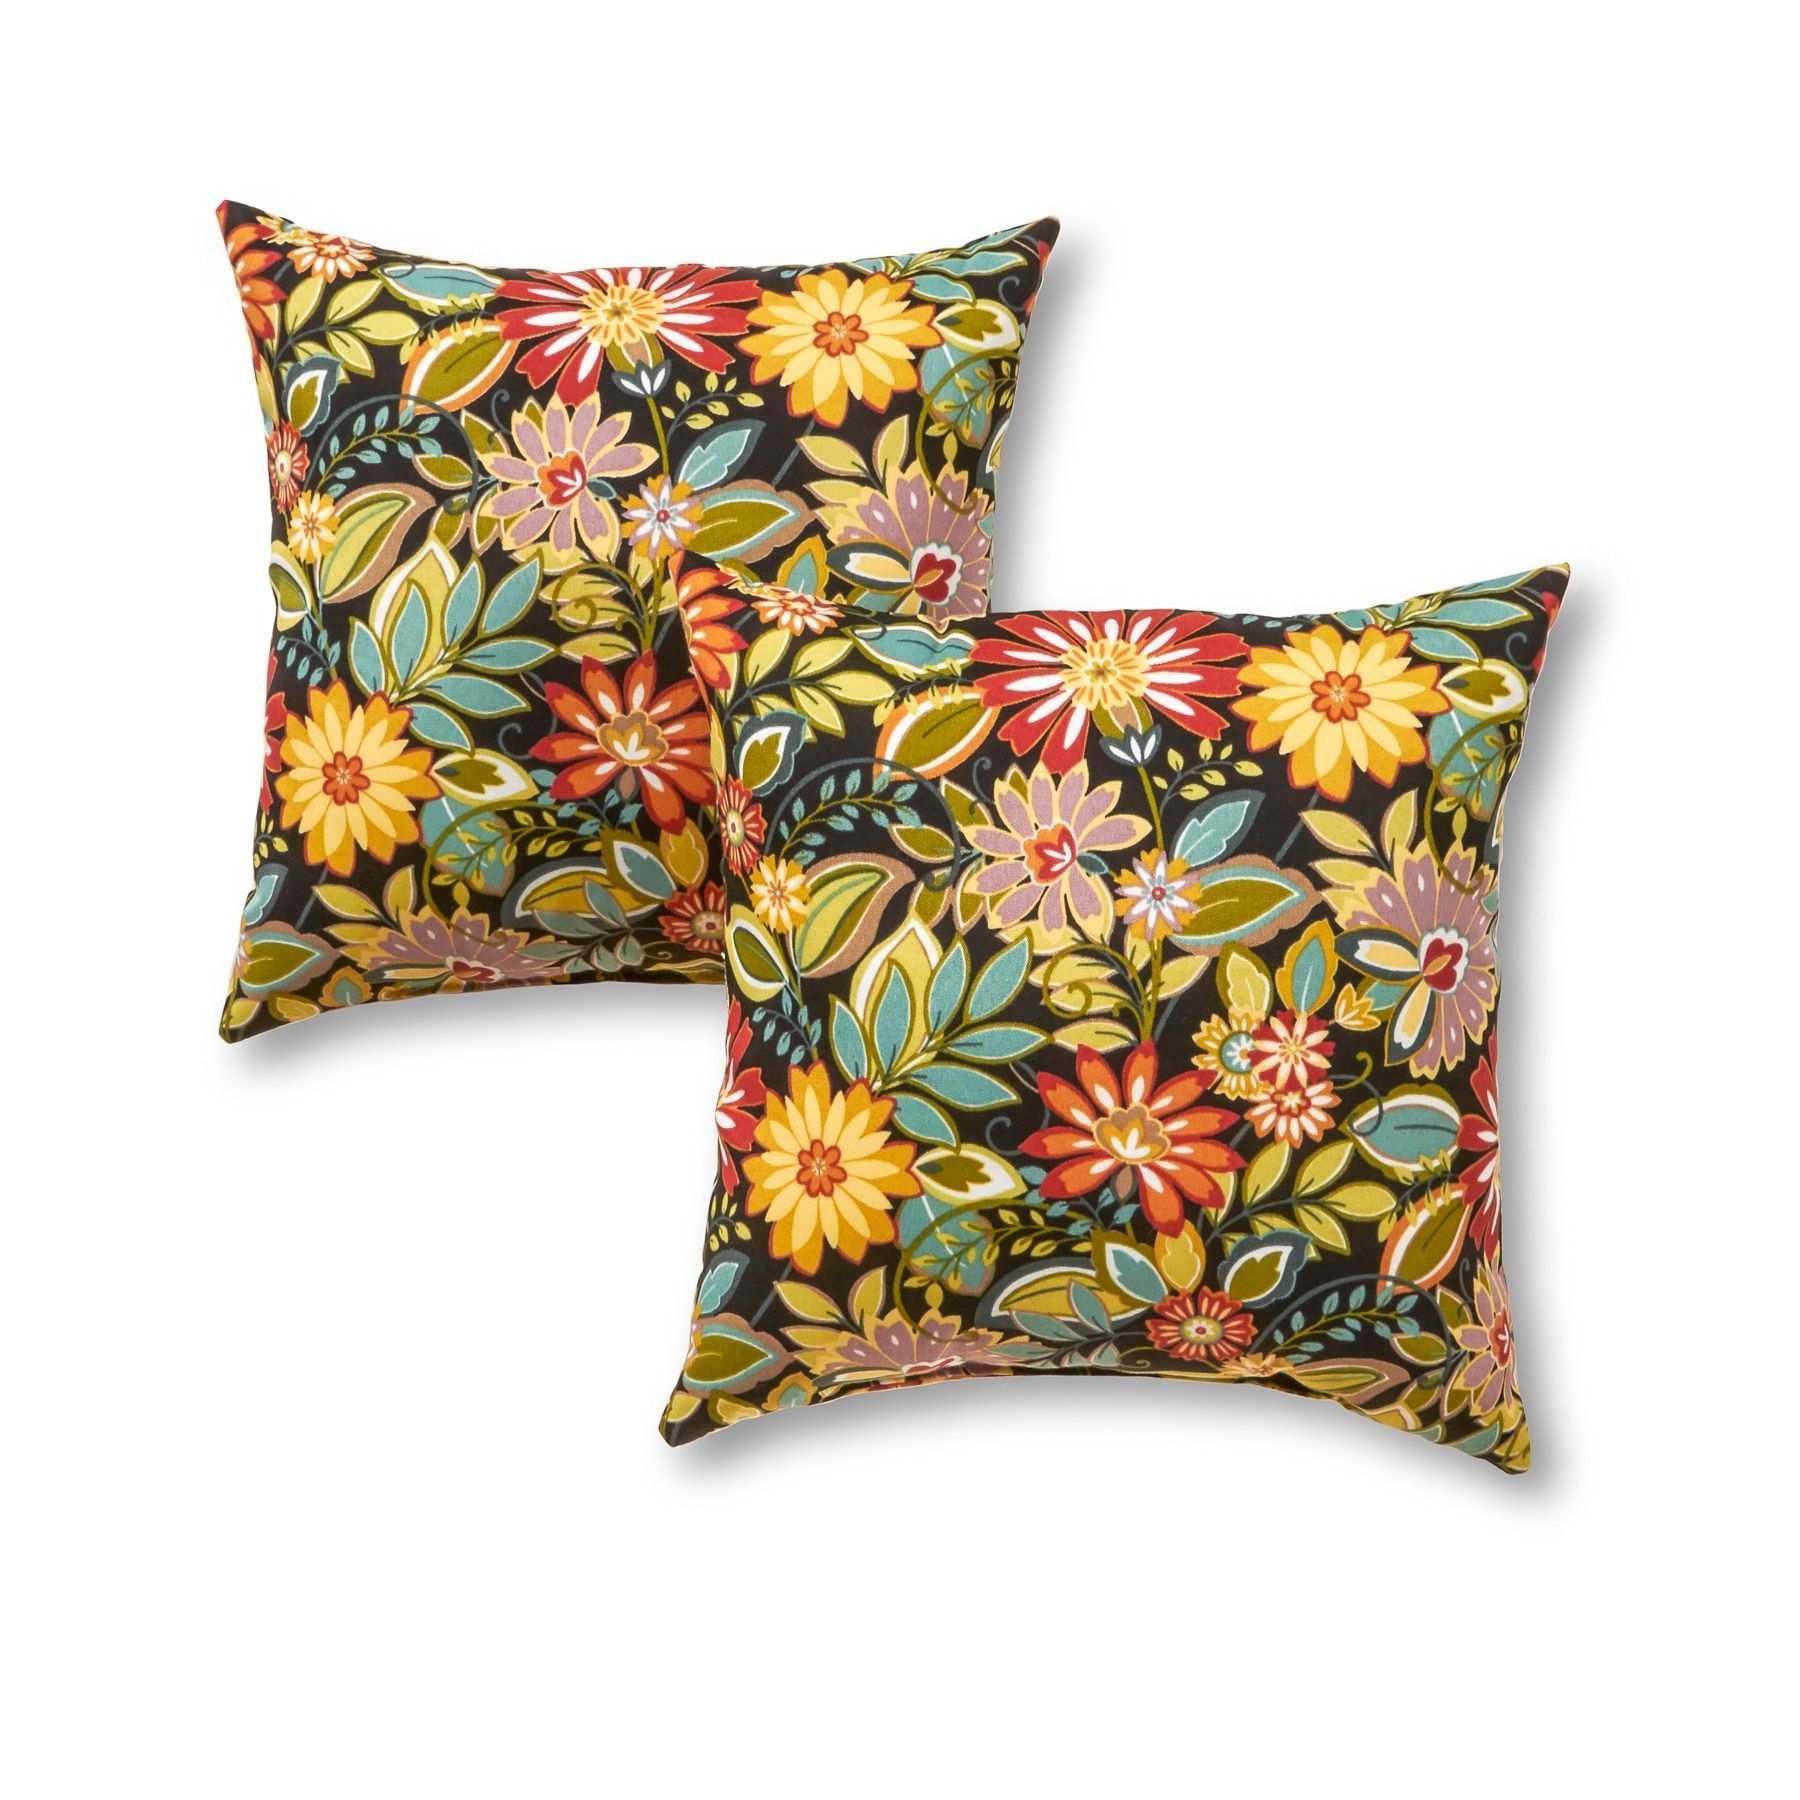 Outdoor 17 Inch Square Accent Pillows Set Of Two In Jungle Floral